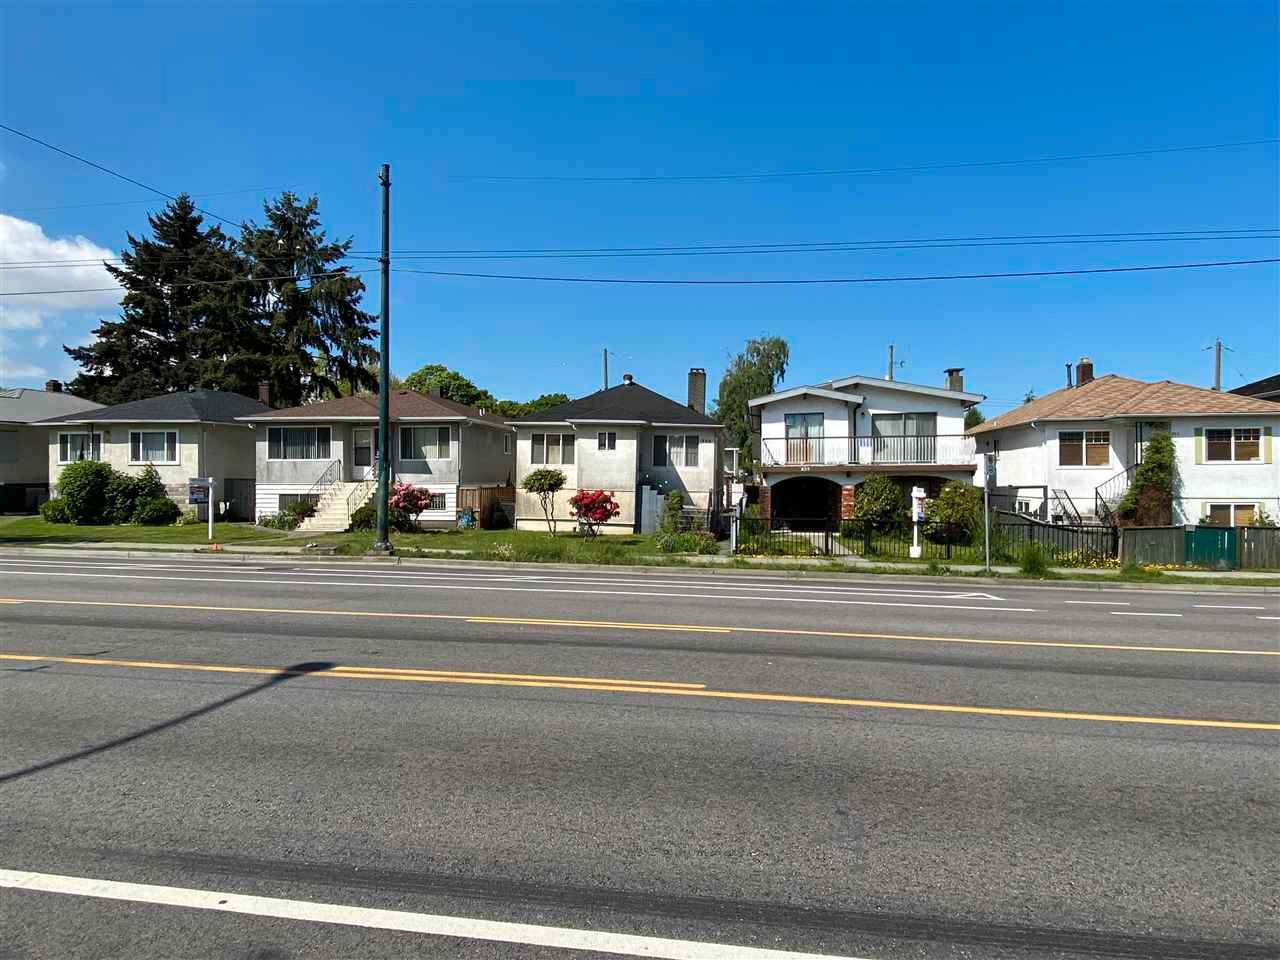 Photo 12: Photos: 2388 ADANAC Street in Vancouver: Hastings House for sale (Vancouver East)  : MLS®# R2574174